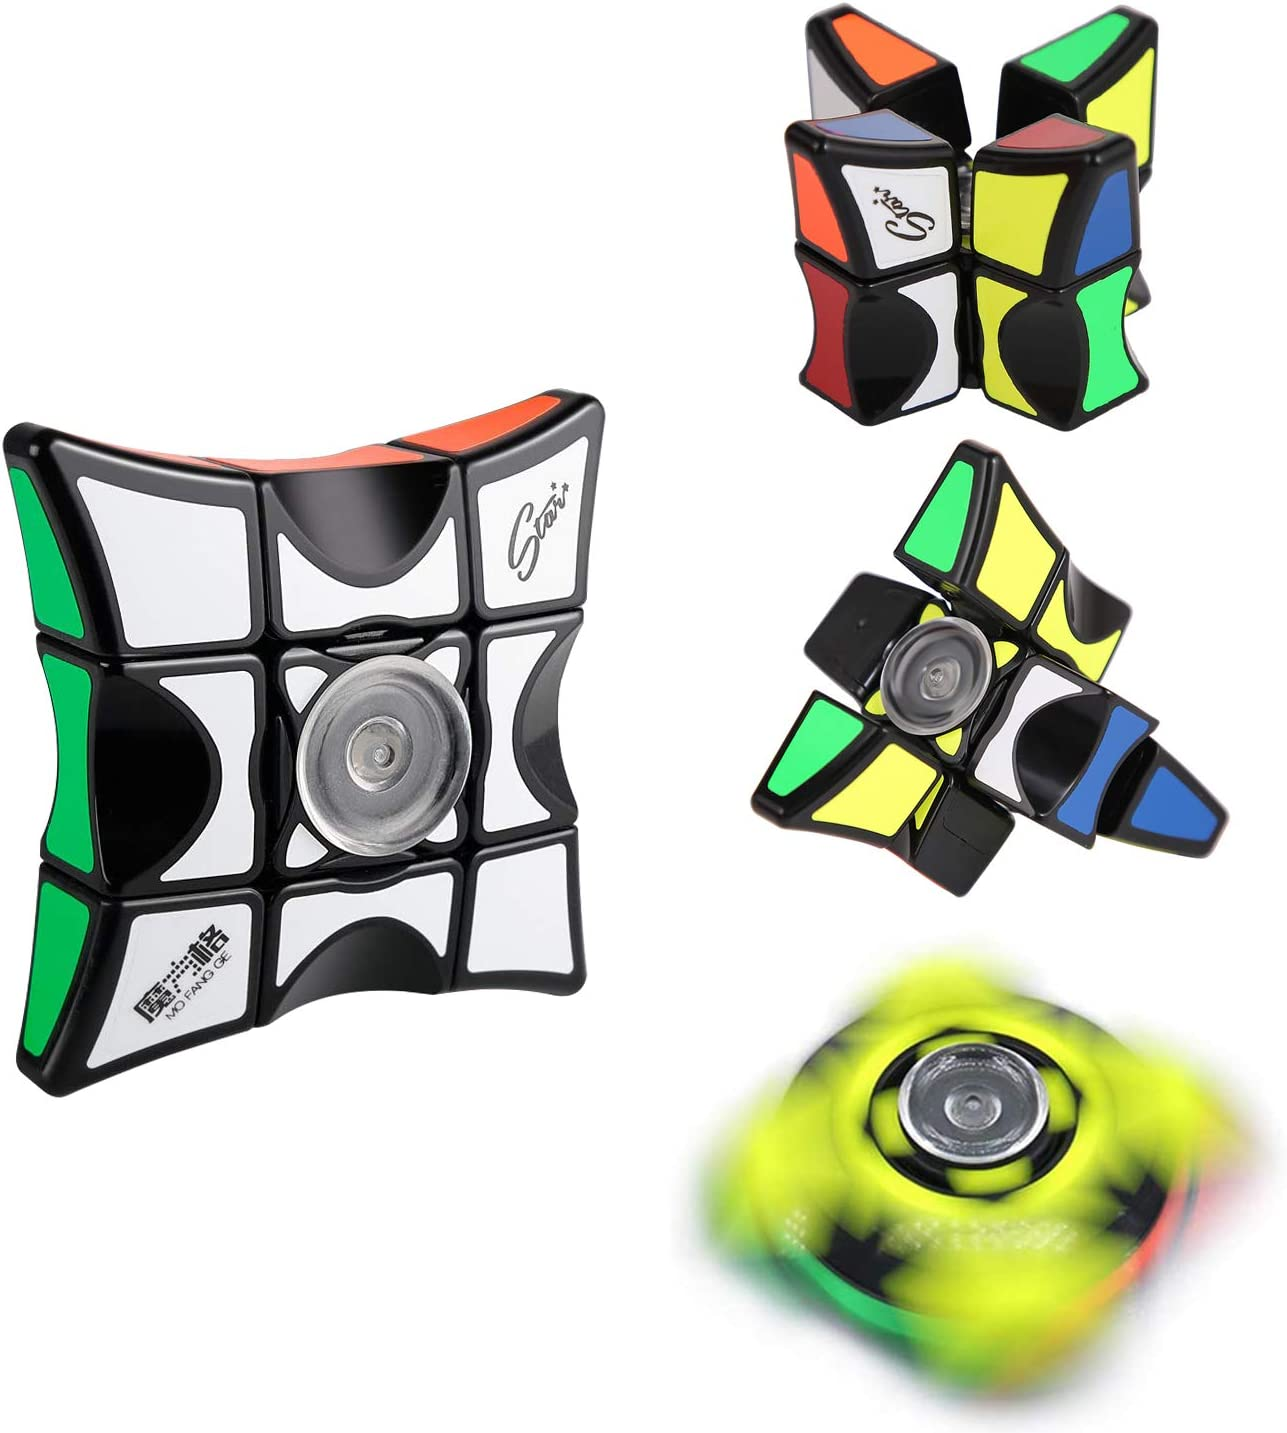 SCIONE Fidget Spinner Floppy Cube Fidget Toys Anti-Anxiety Focus ADHD Relax Finger Spinner Stress Relief Toys for Adults Kids